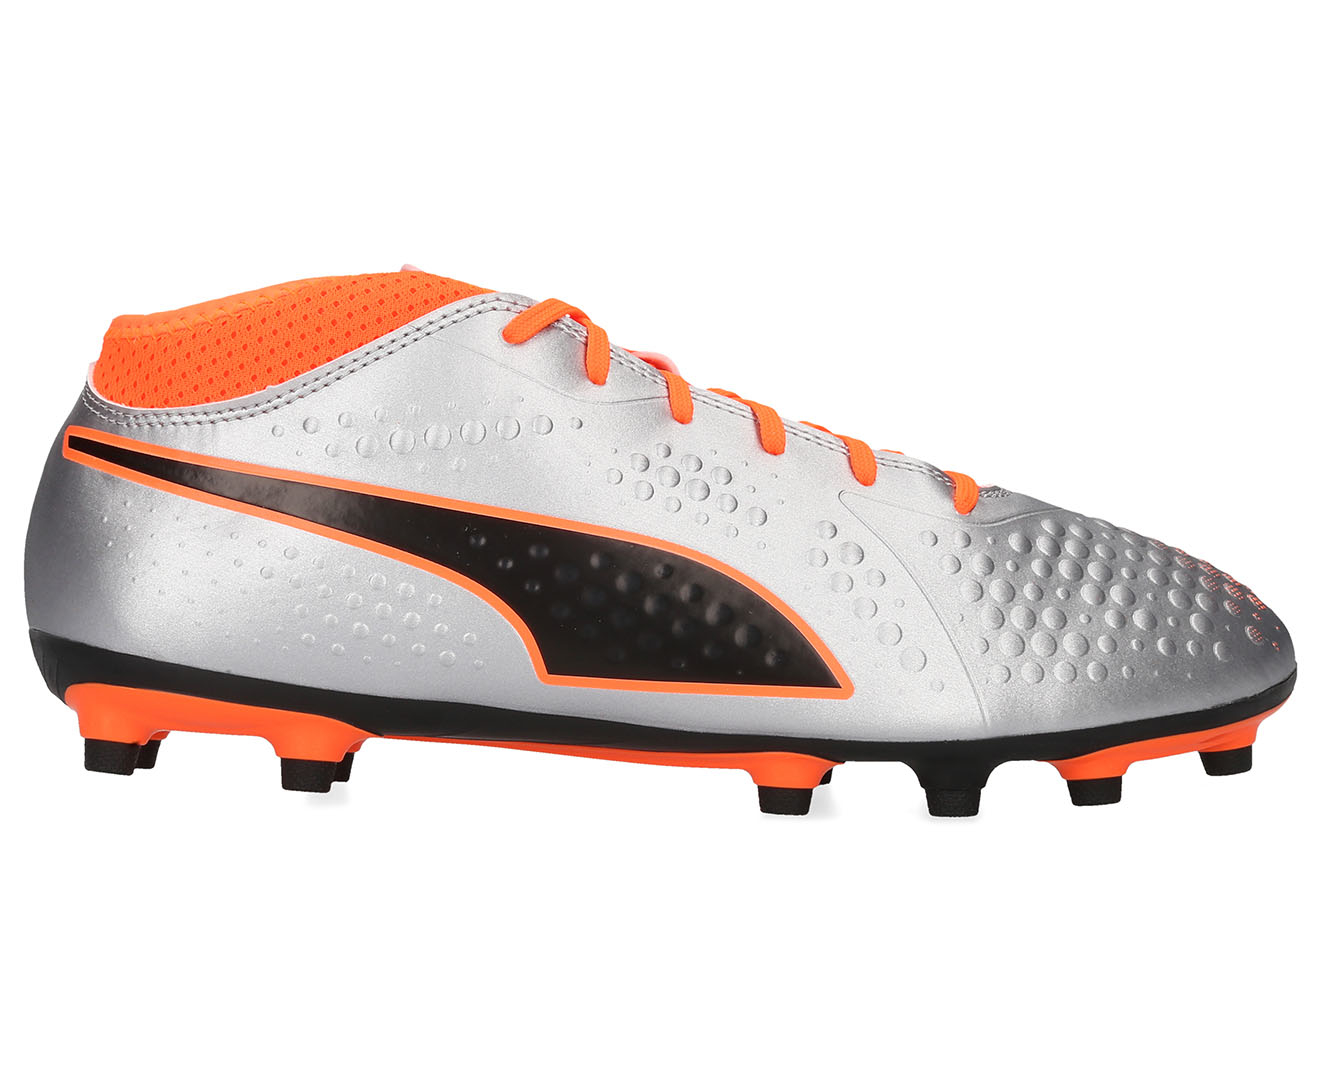 9b6cfe964 Puma One Men's 4 Syn FG Boot - Silver/Orange | eBay